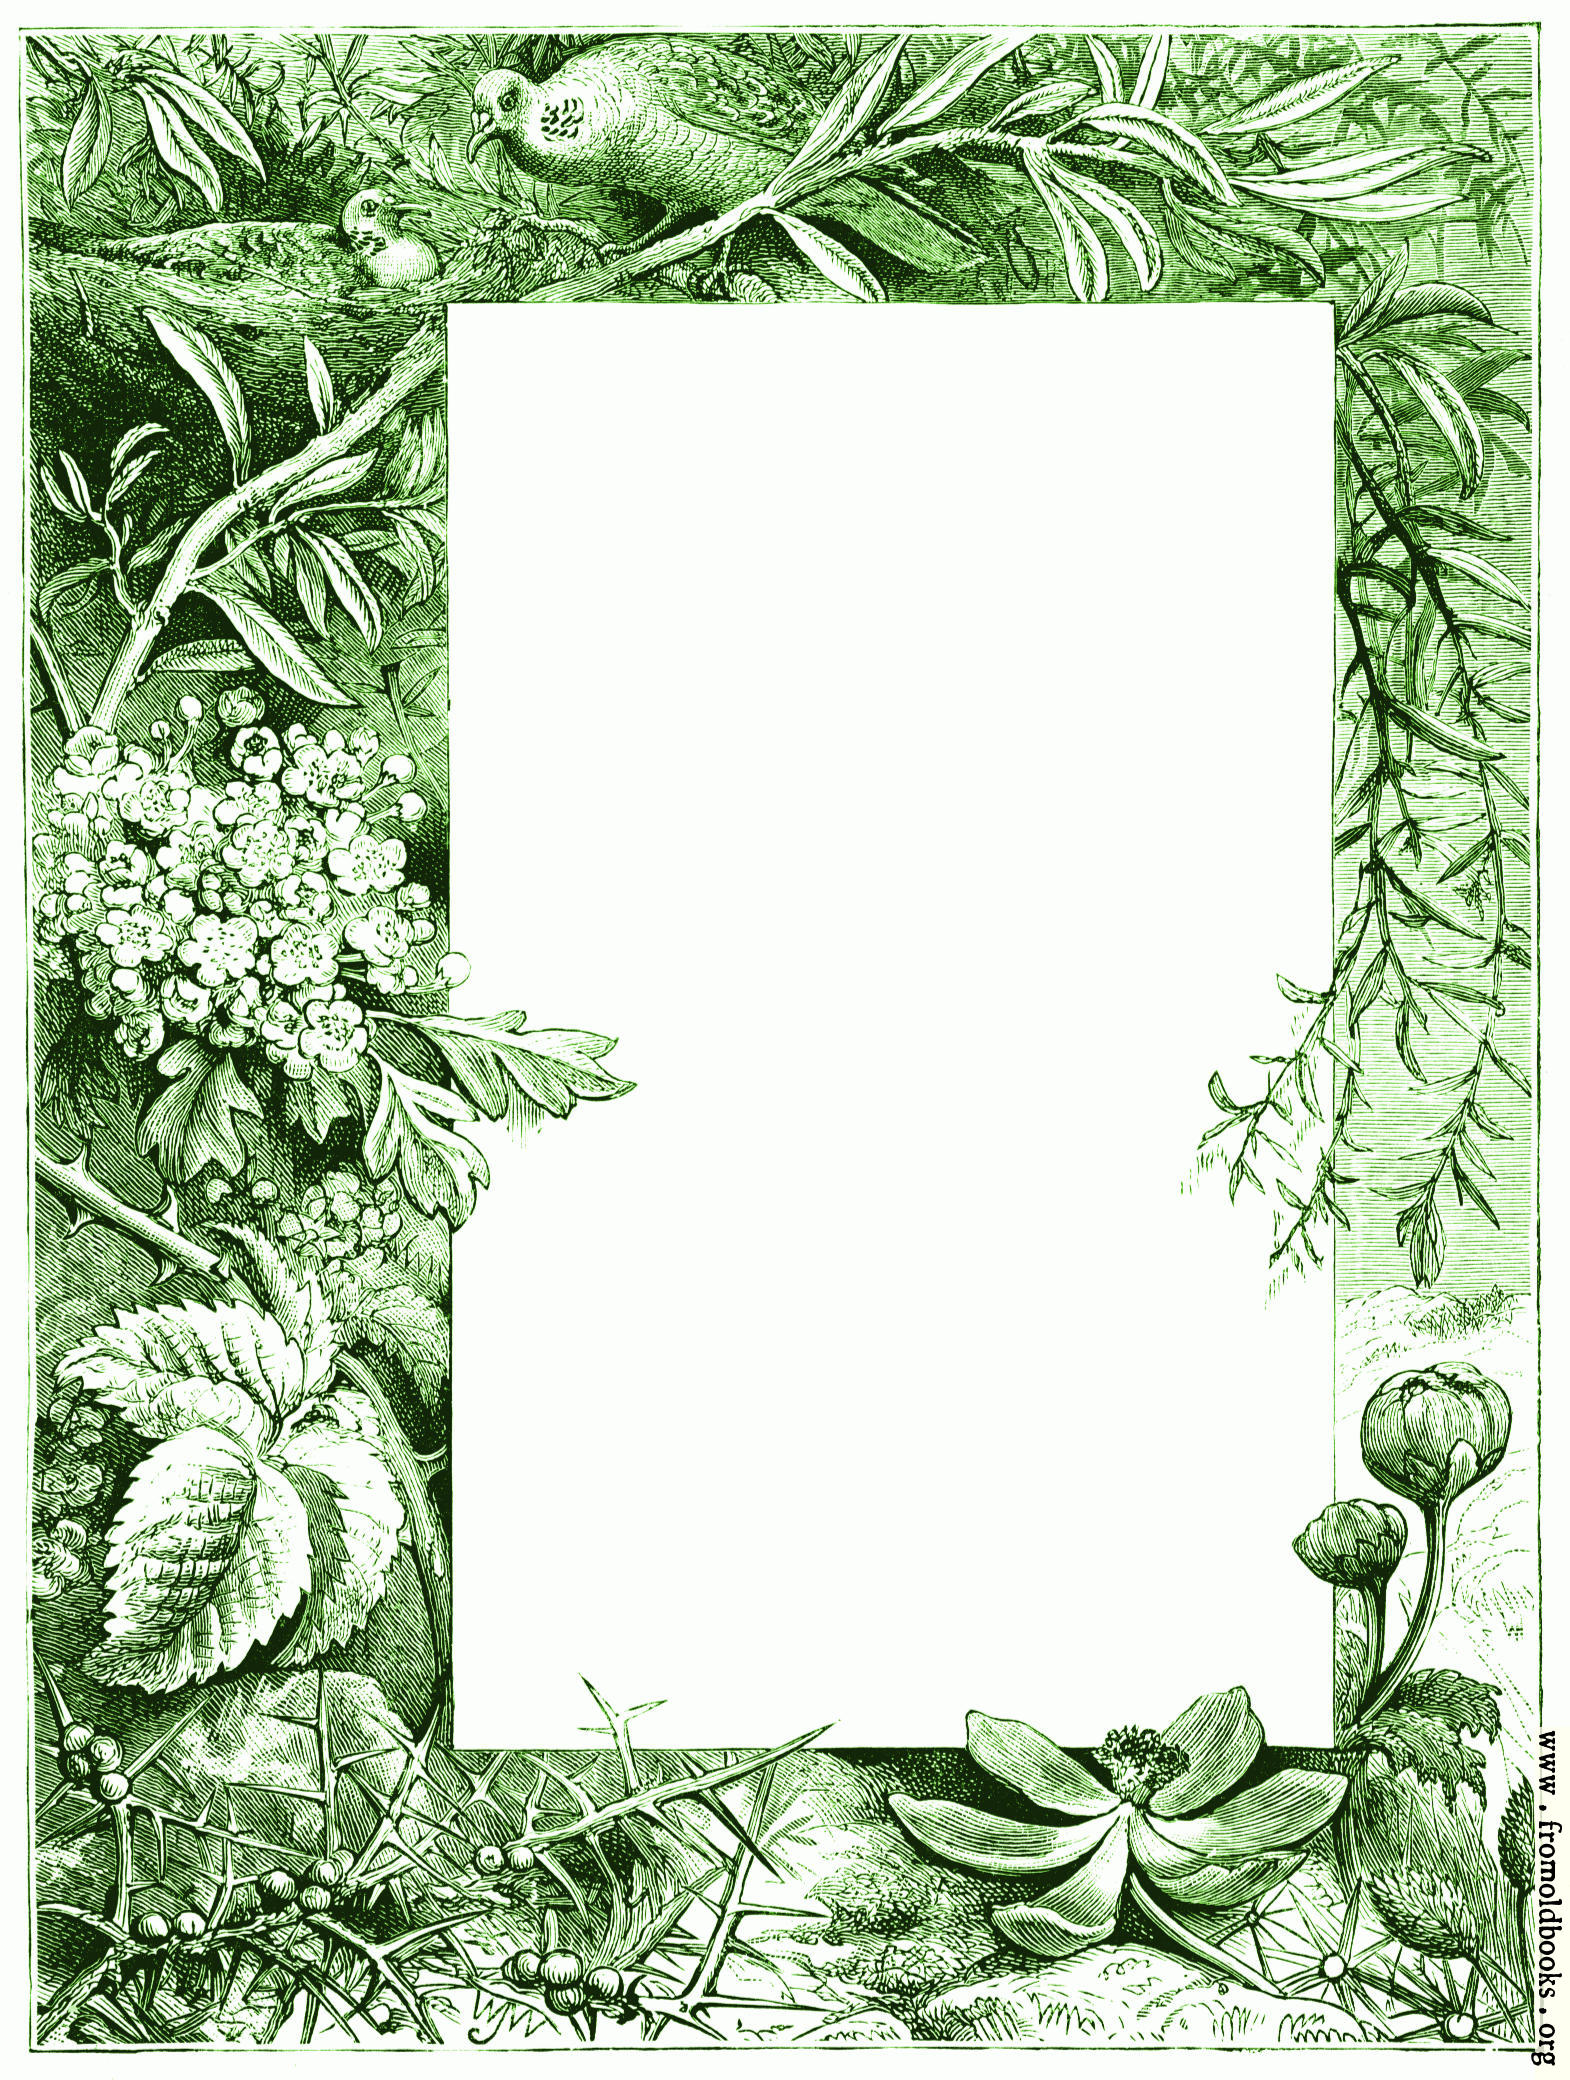 Business Frames Green Borders Picture